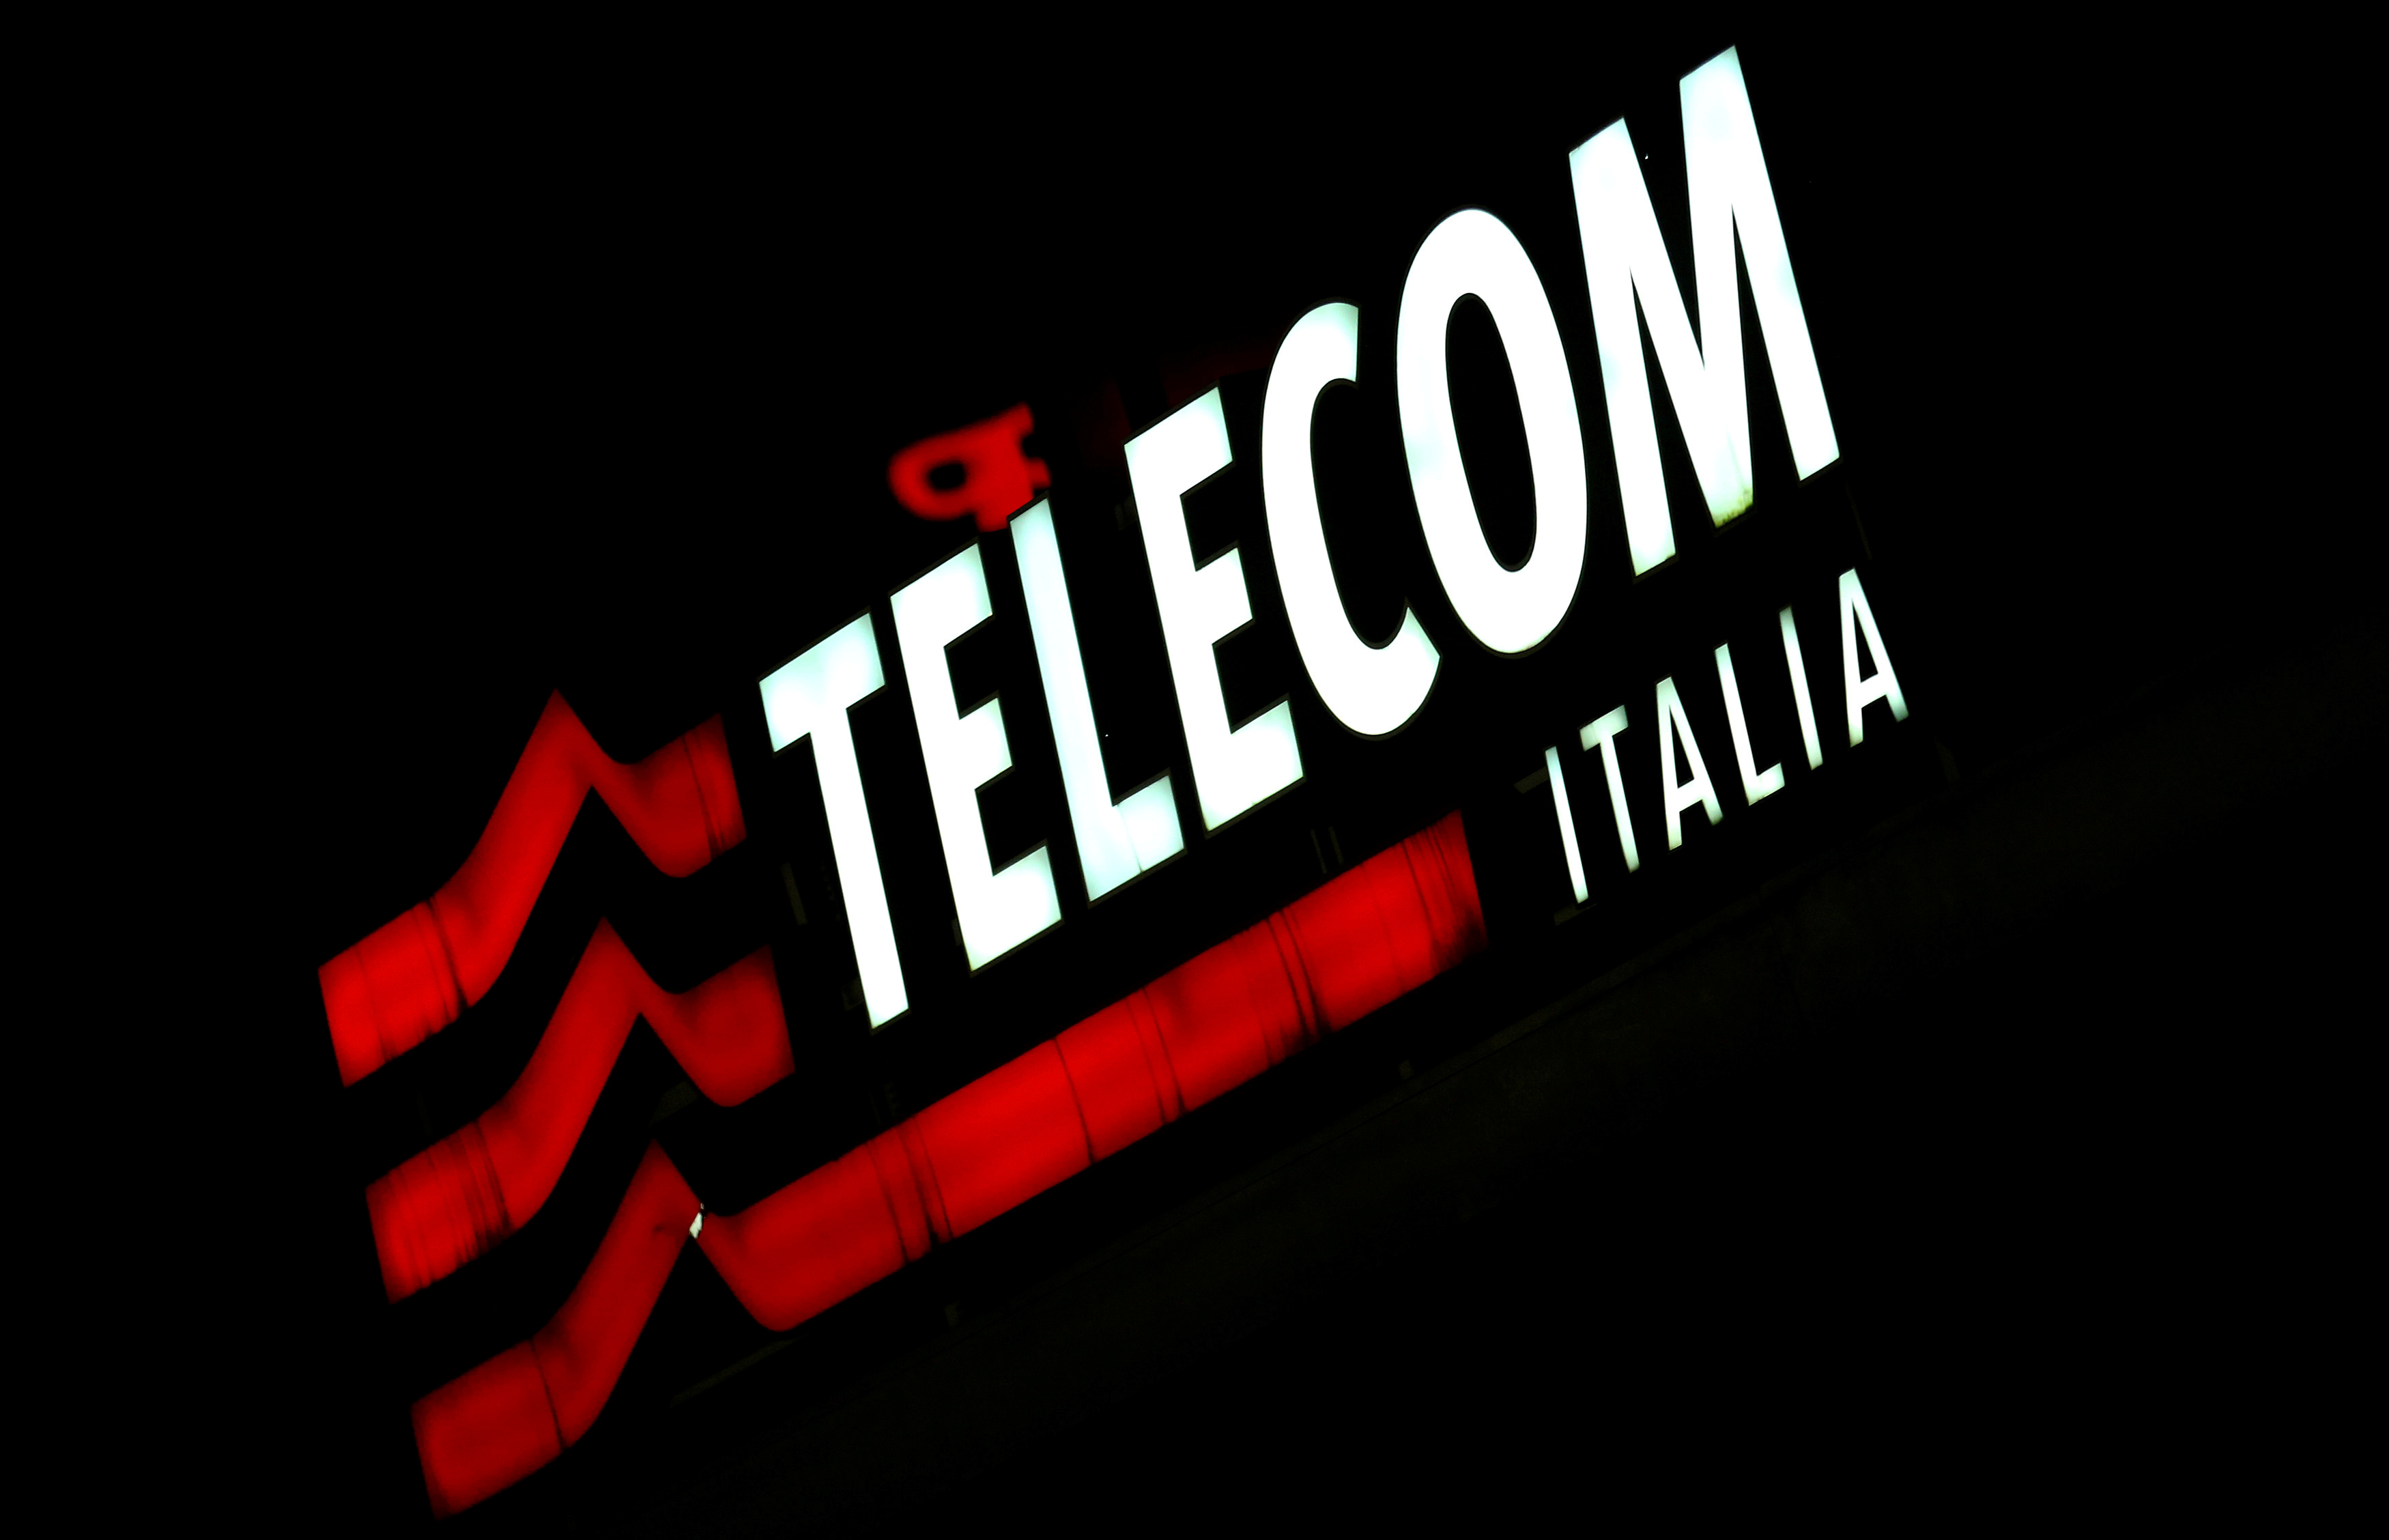 U.S. hedge fund wins control of Telecom Italia board